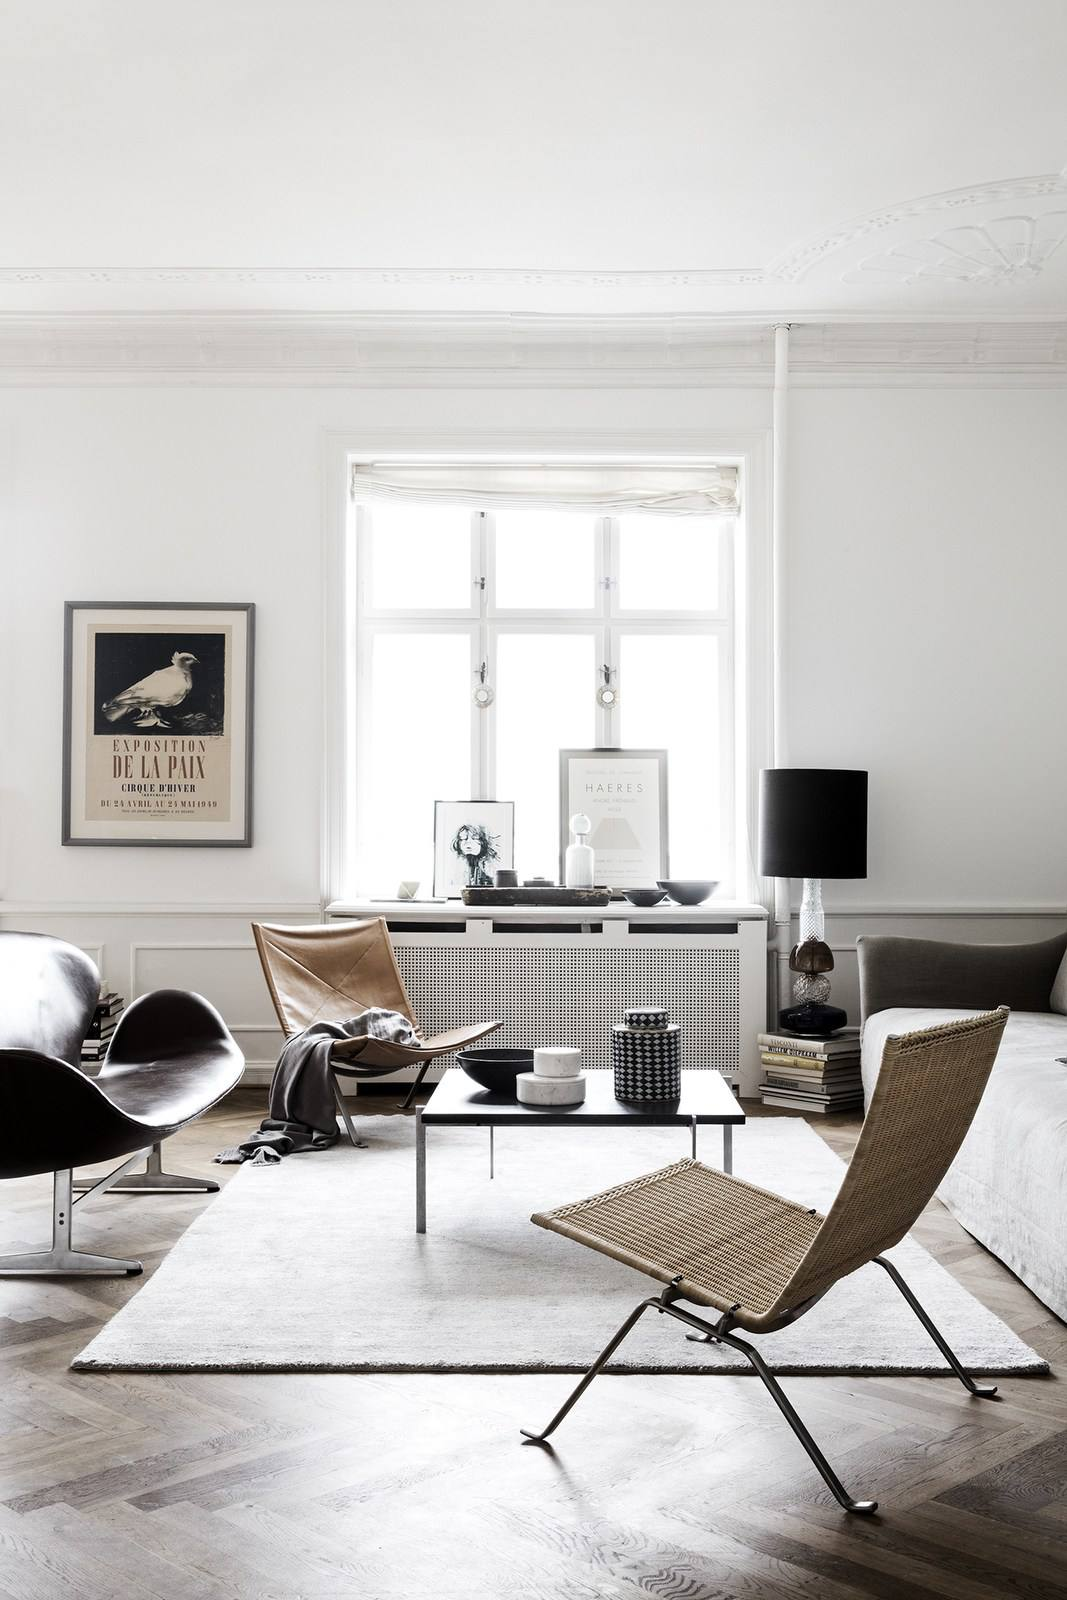 Ikea Nice France 15 Minimal Interiors To Inspire - From Luxe With Love